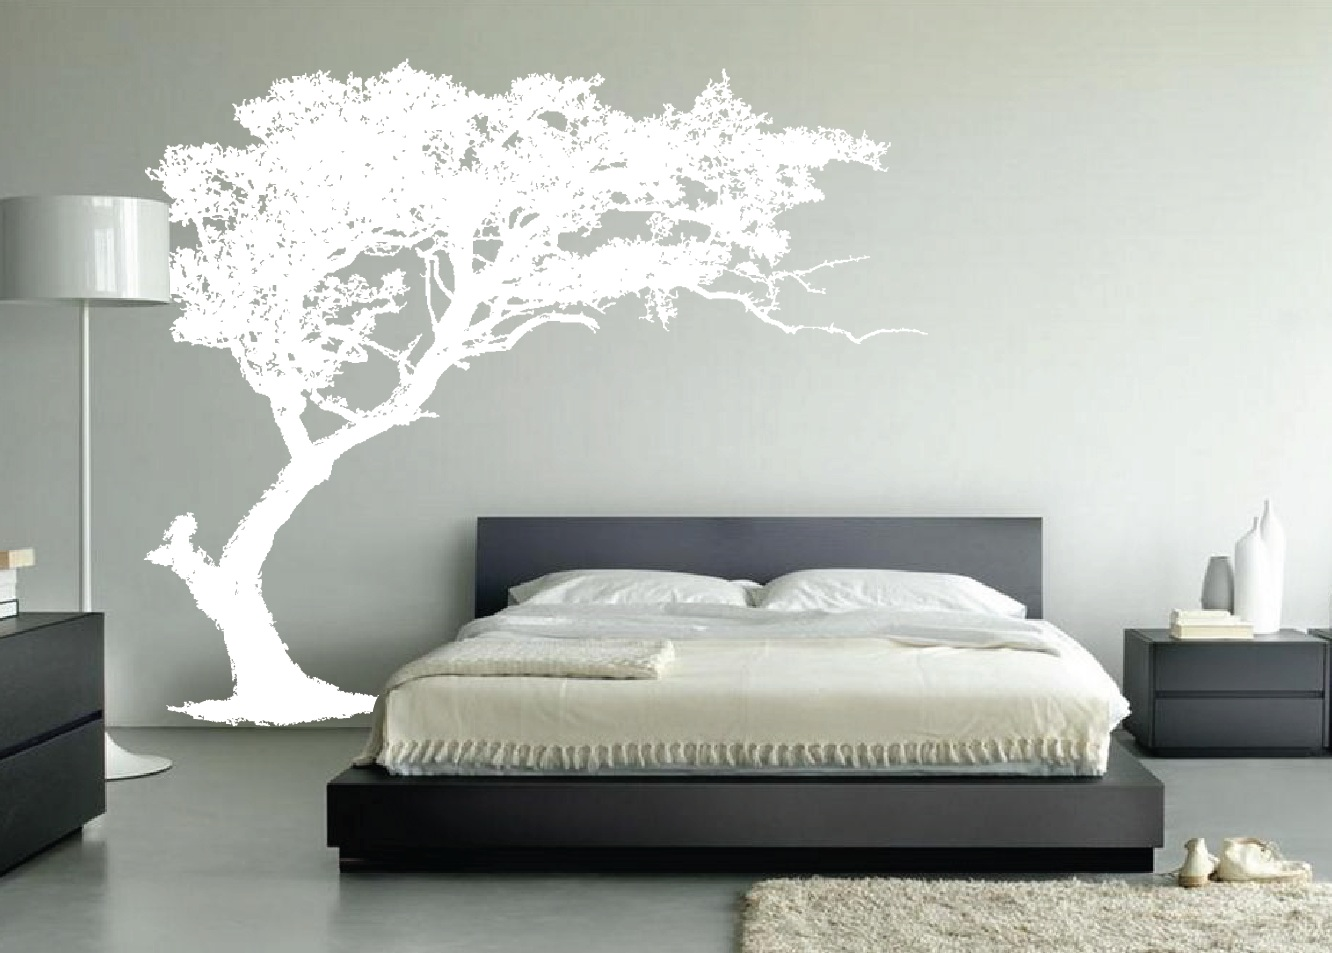 vinyl-tree-wall-decal-bedroom-decor-1130.jpg